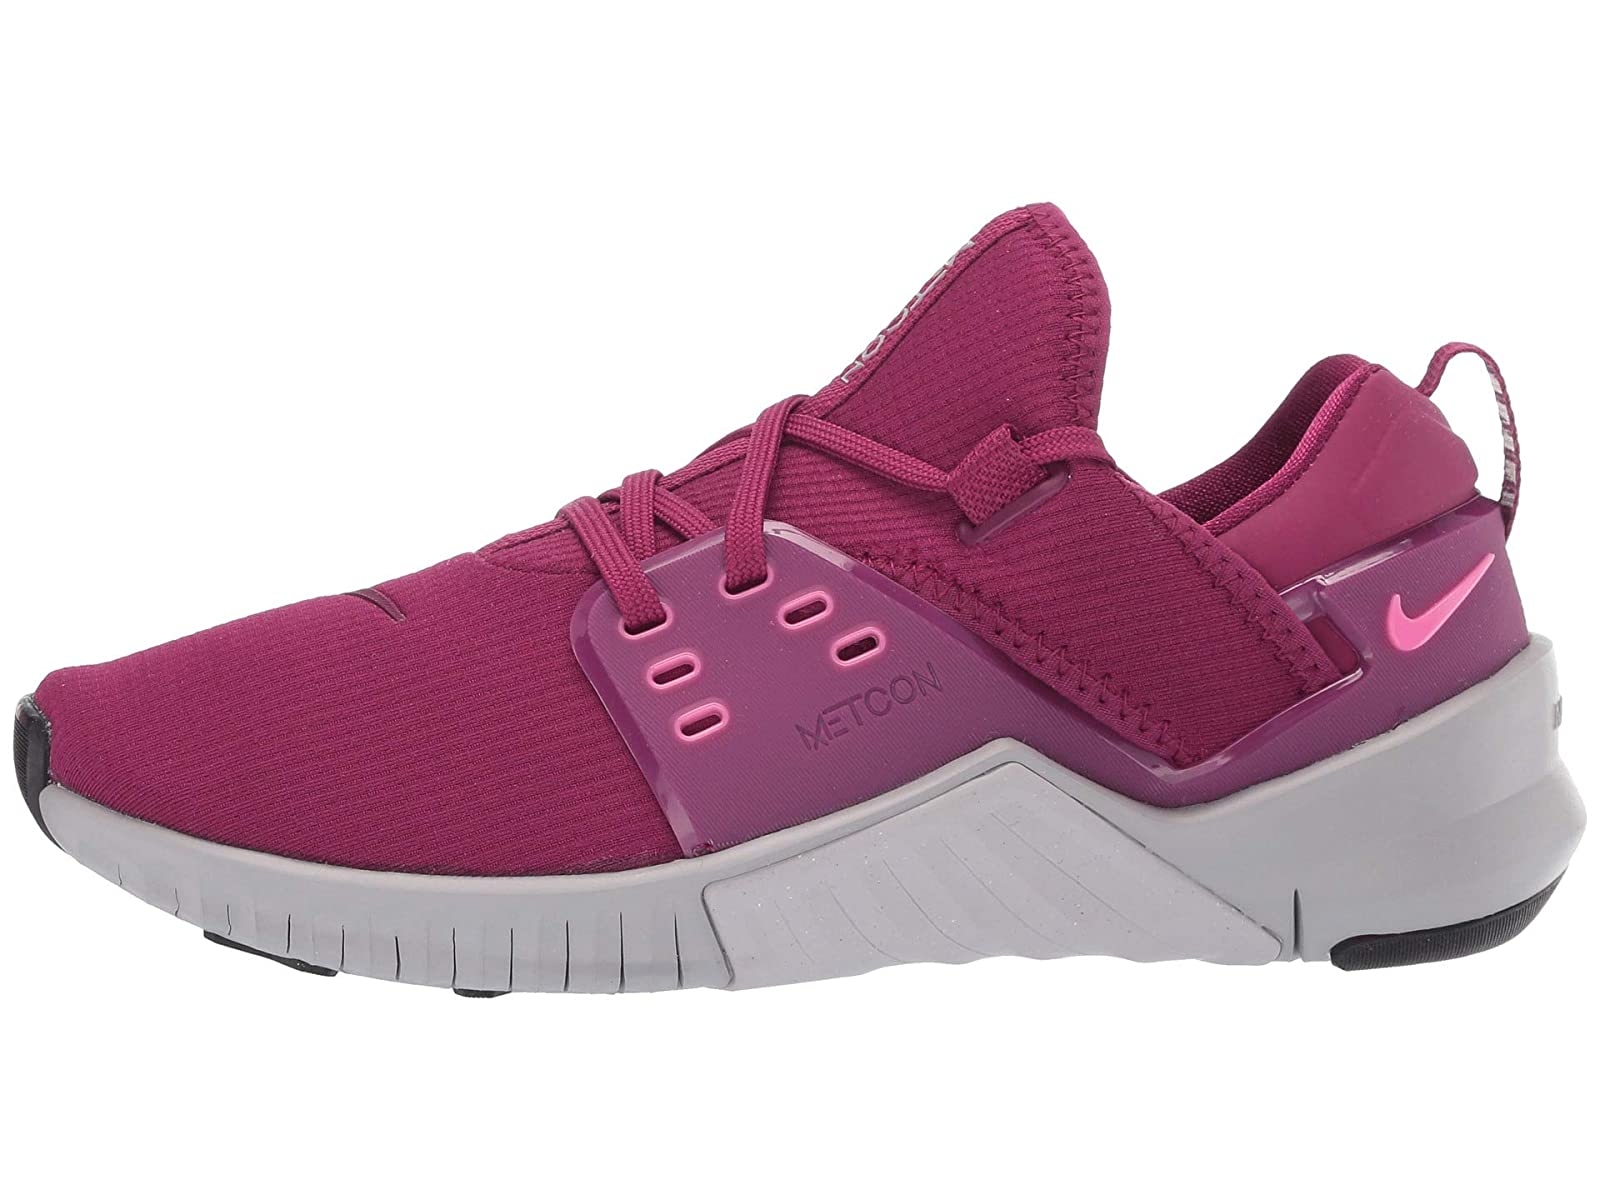 Women-039-s-Sneakers-amp-Athletic-Shoes-Nike-Free-Metcon-2 thumbnail 33